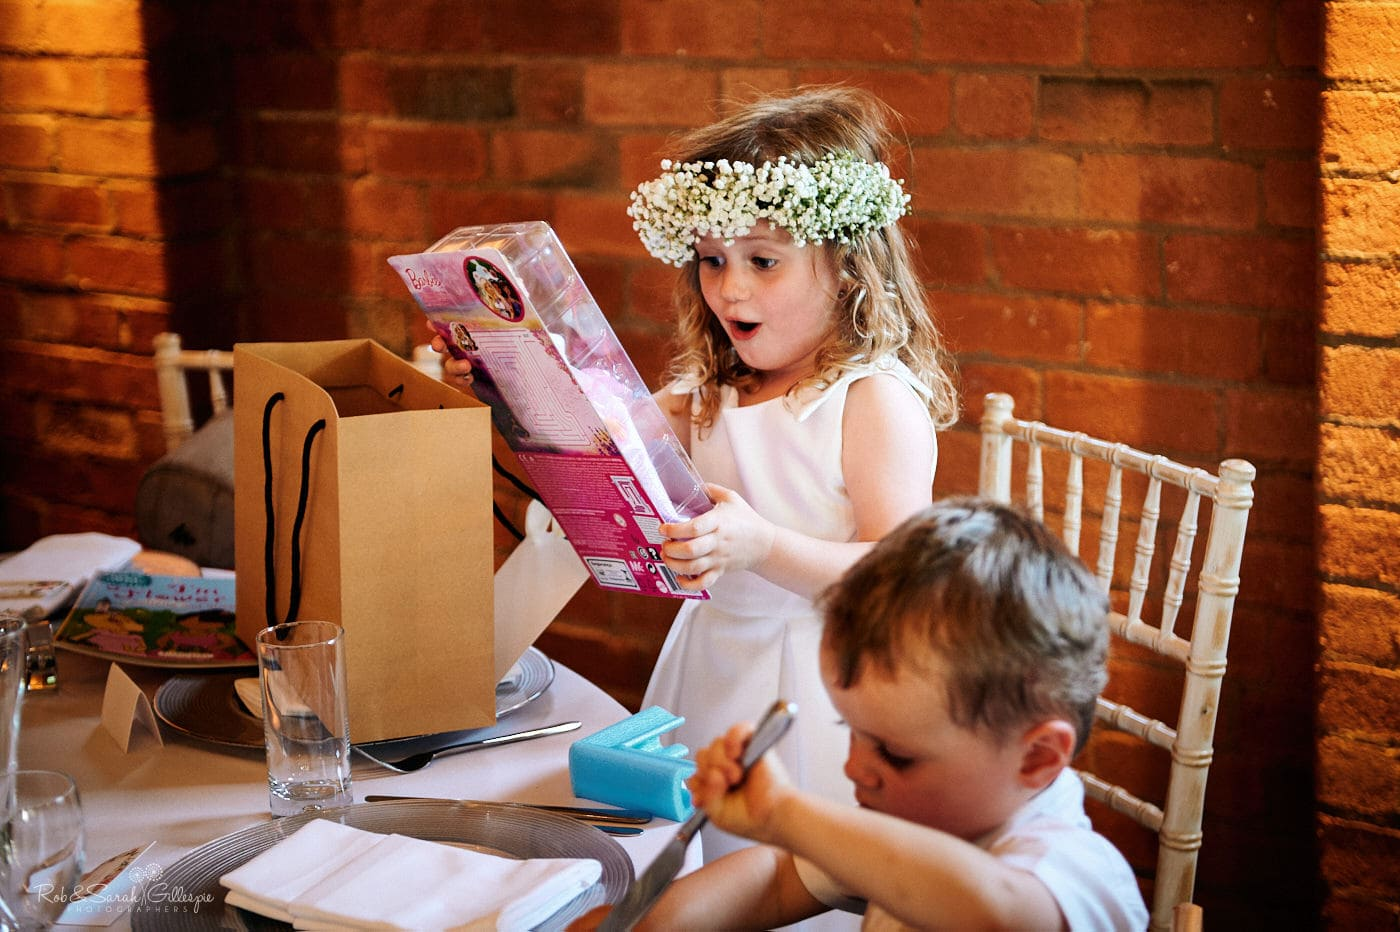 Flowergirl receives gift before wedding meal